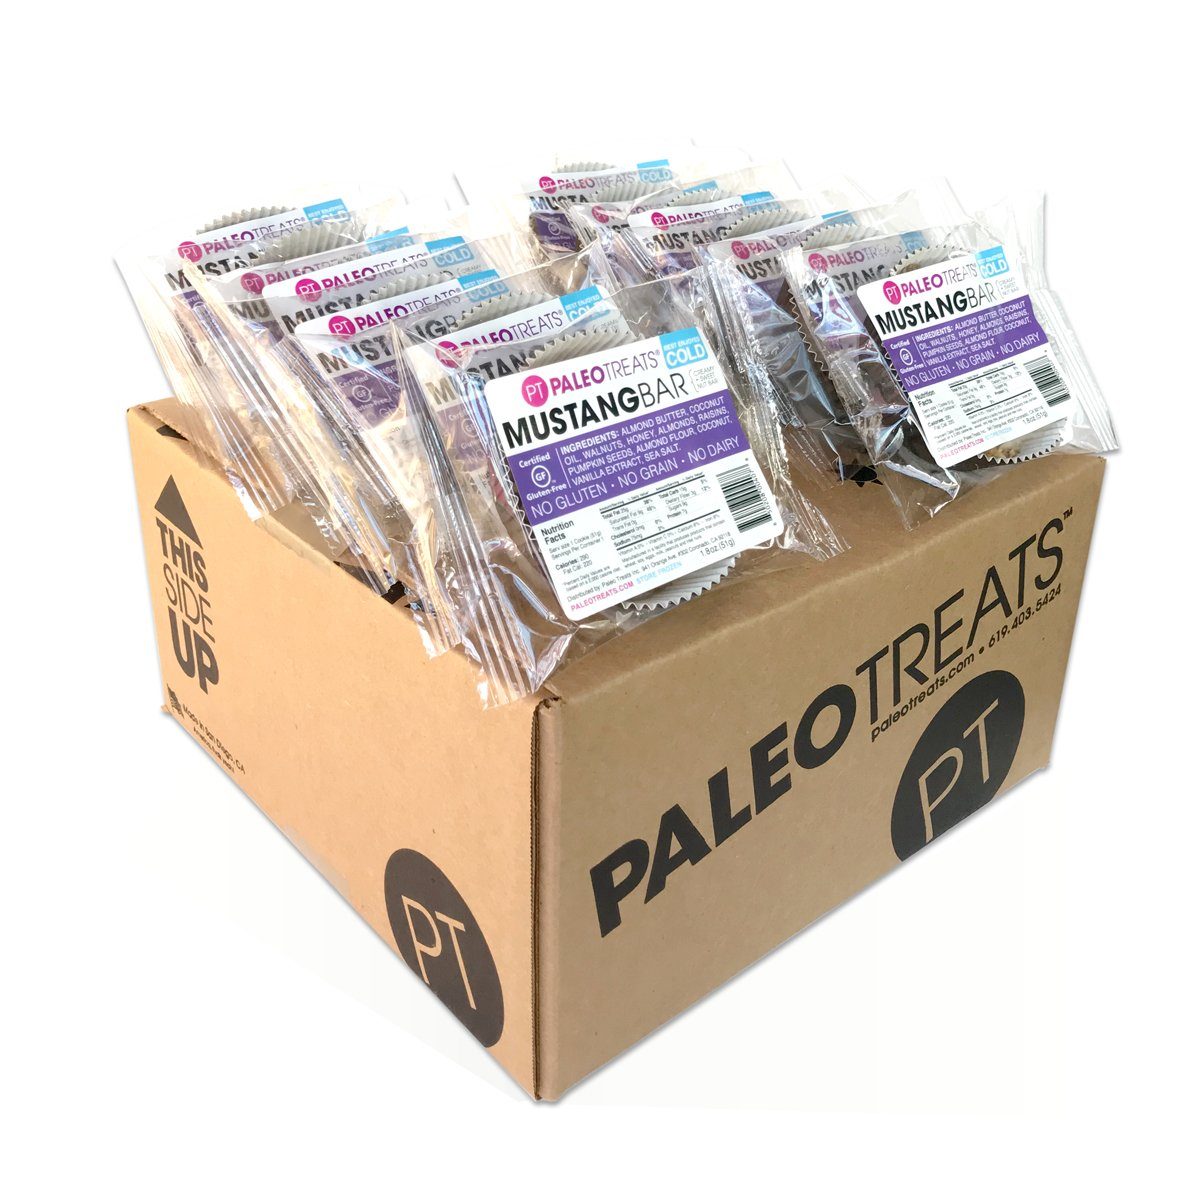 Paleo Treats Mustang Bar: Paleo cookie, Gluten-Free, Grain-Free, Dairy-Free, Soy-Free, Egg-Free, Keto, Real Food Dessert (Box of 12) by Paleo Treats (Image #1)